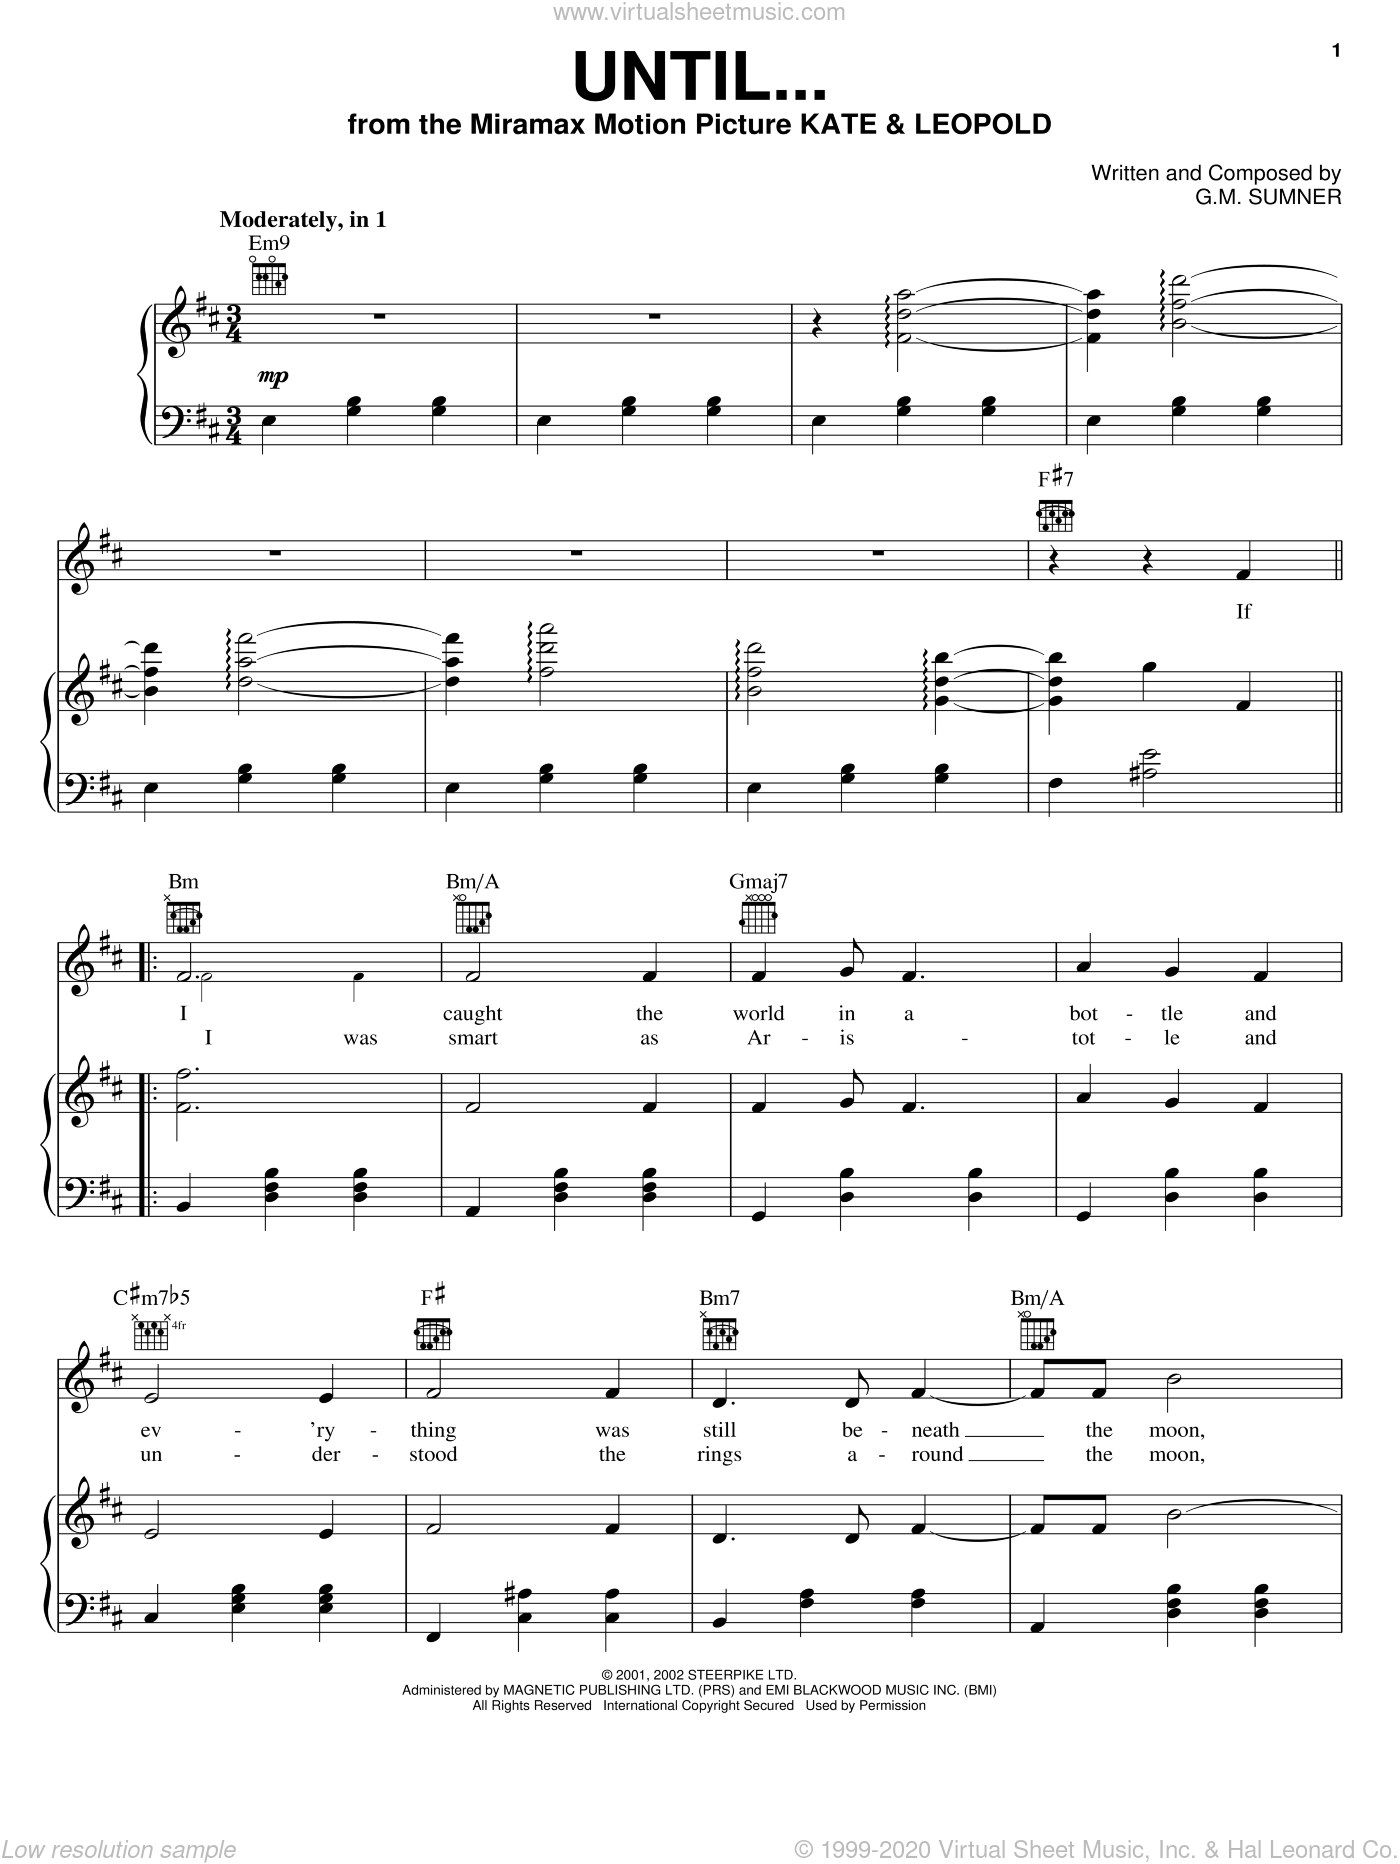 Until... sheet music for voice, piano or guitar by Sting and G.M. Sumner, intermediate skill level